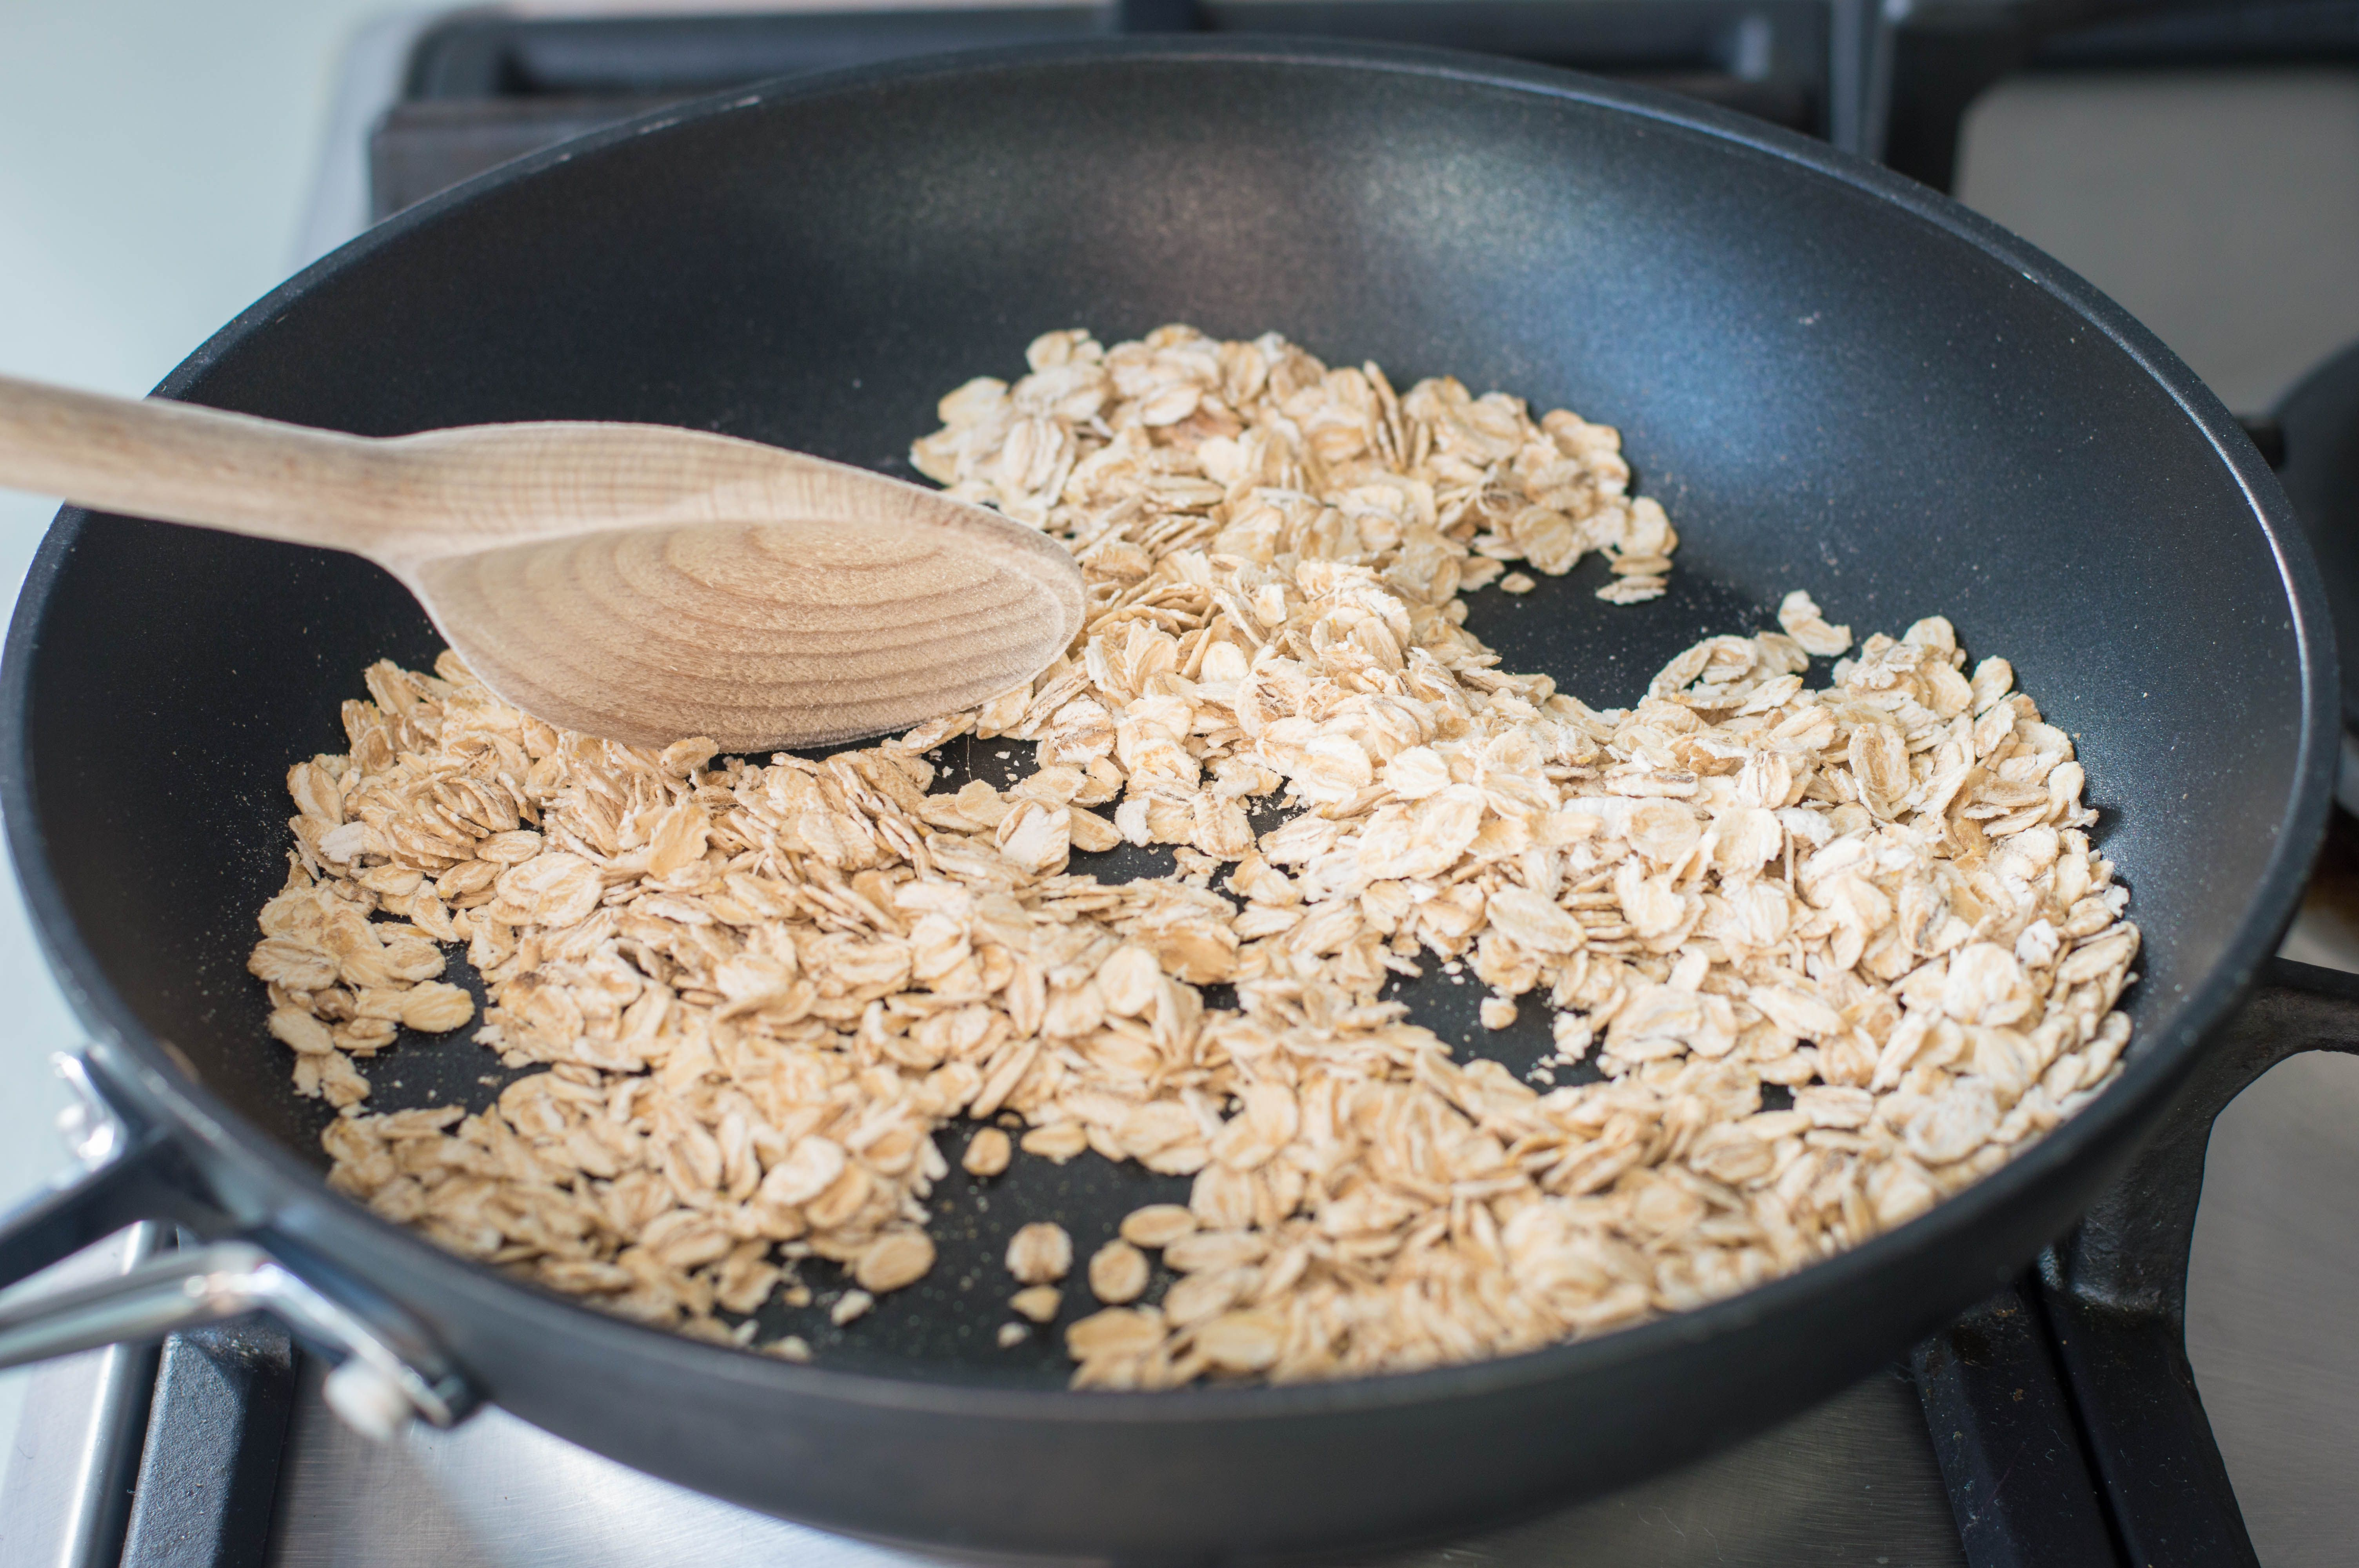 Oats toasting in a skillet